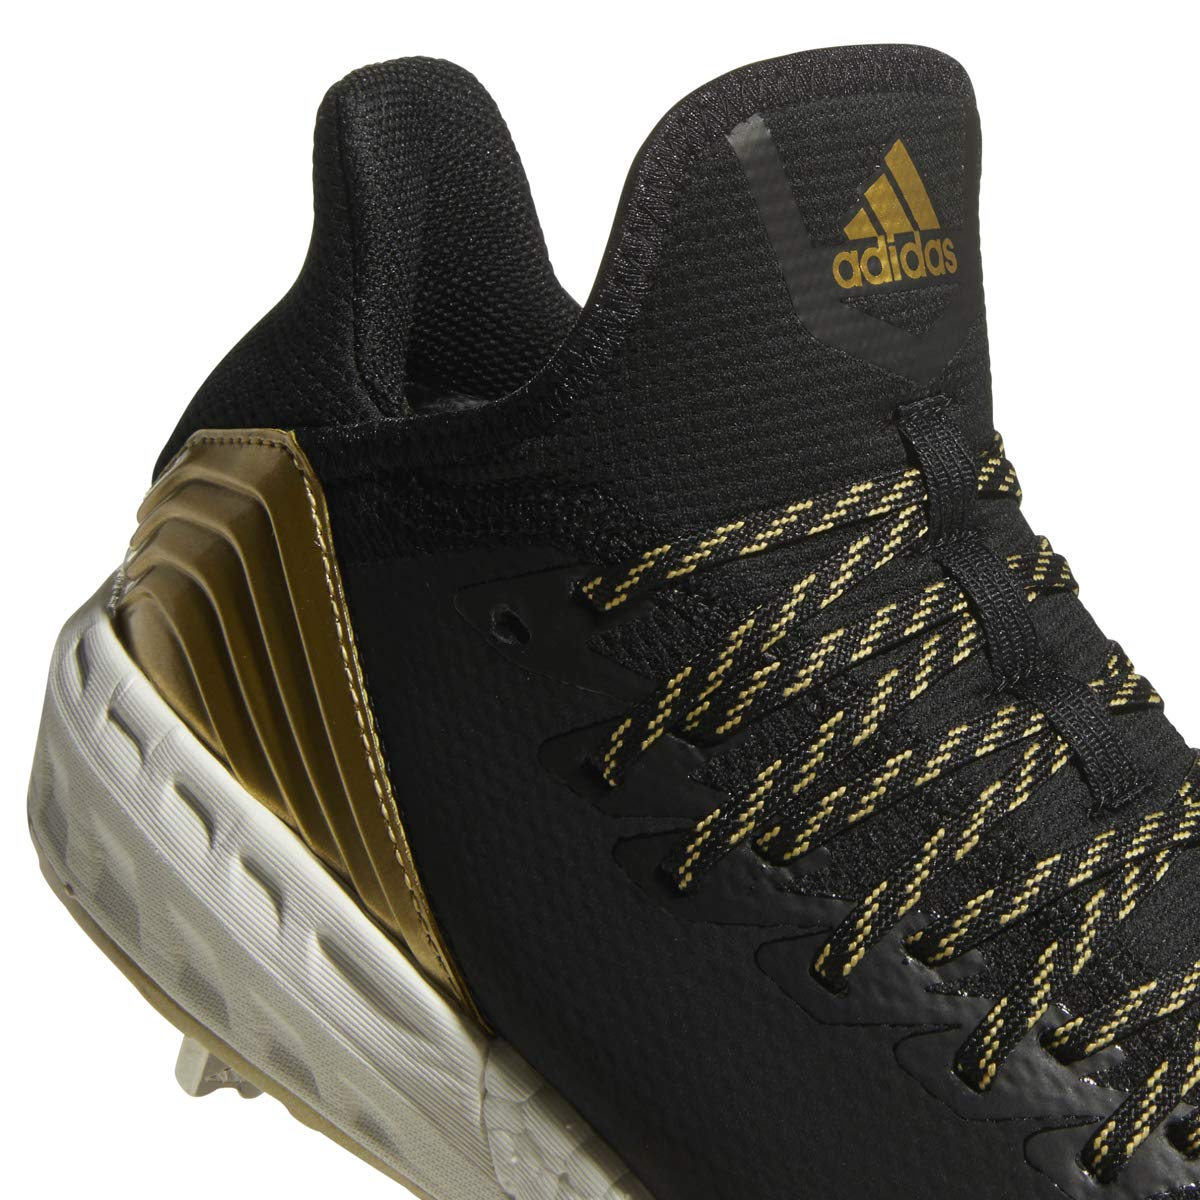 adidas Icon 4 Cleat - Men's Baseball 10 Black/White/Carbon by adidas (Image #4)